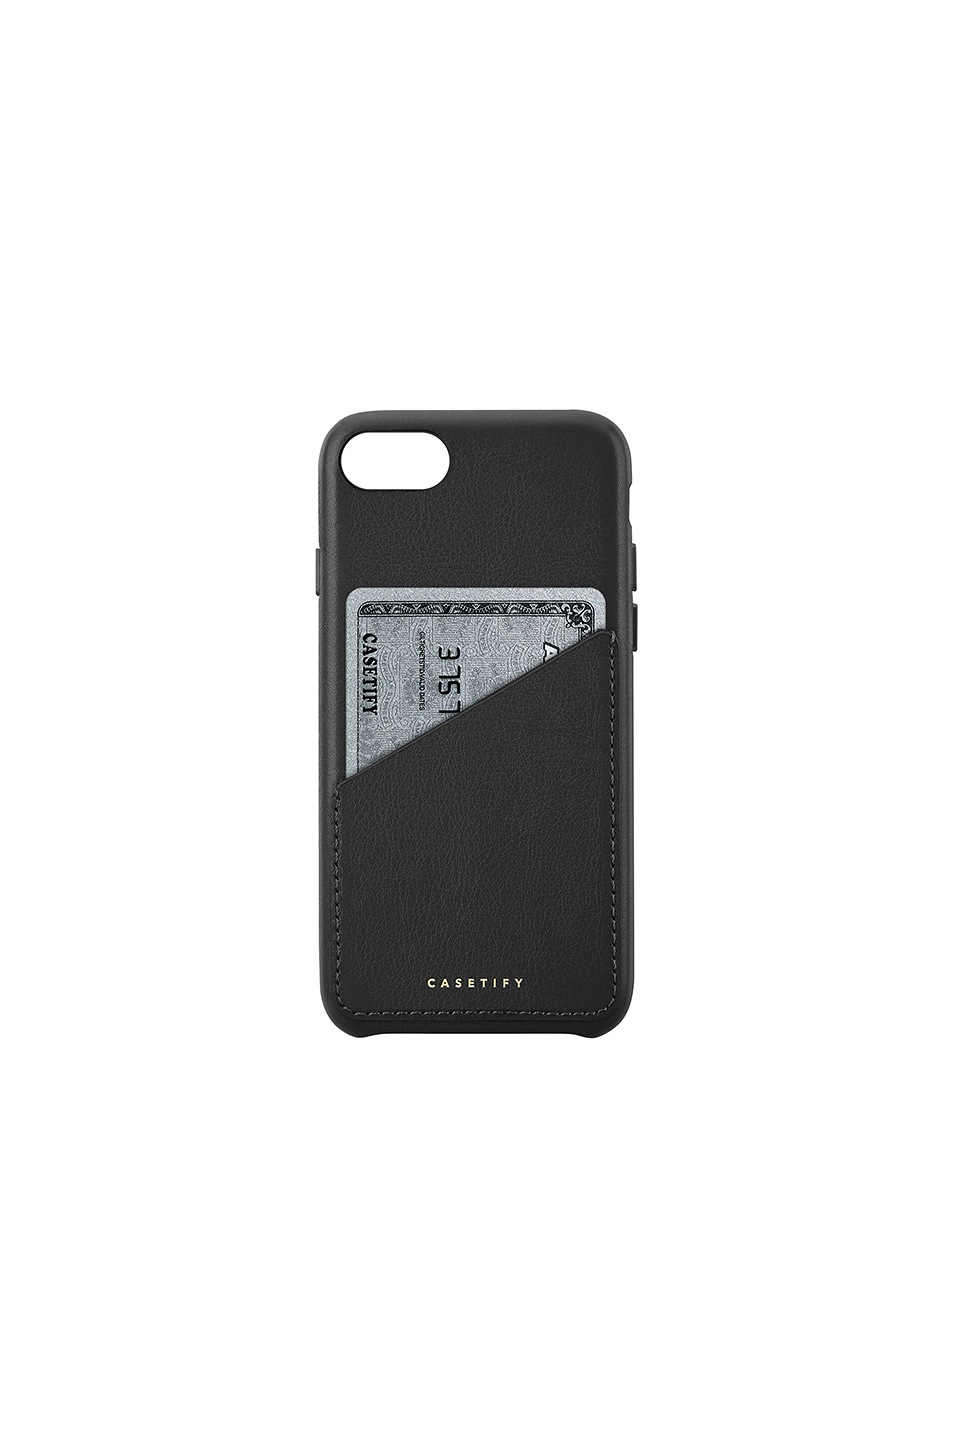 Leather Card Iphone 6/7/8 Case, Black